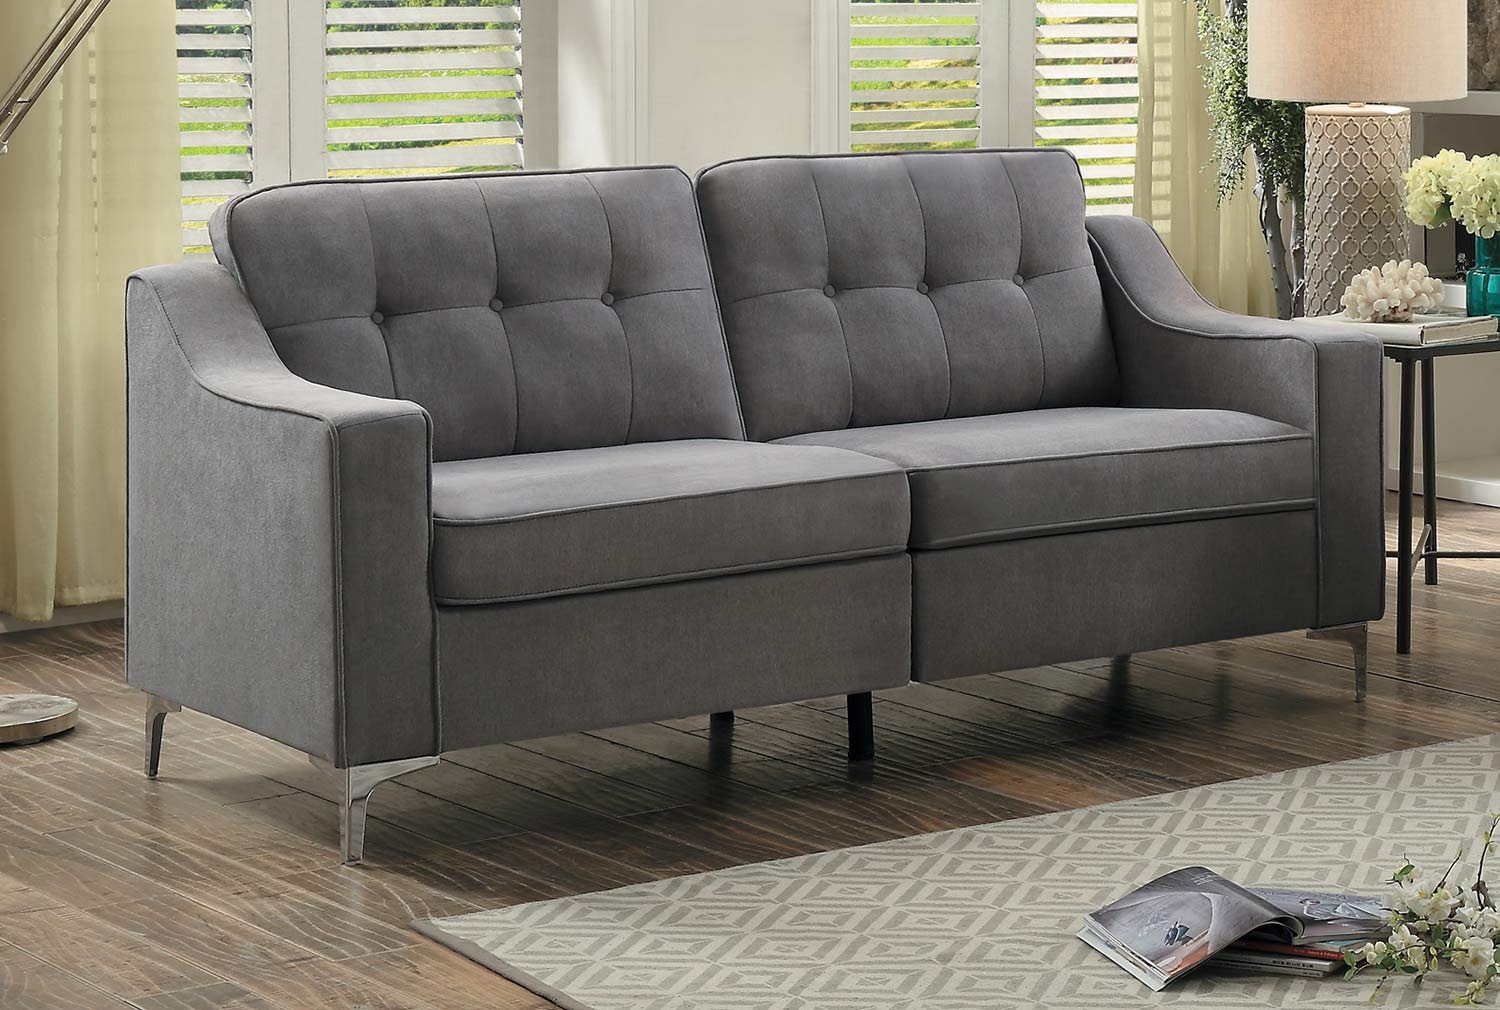 Homelegance Murana Sofa - Gray